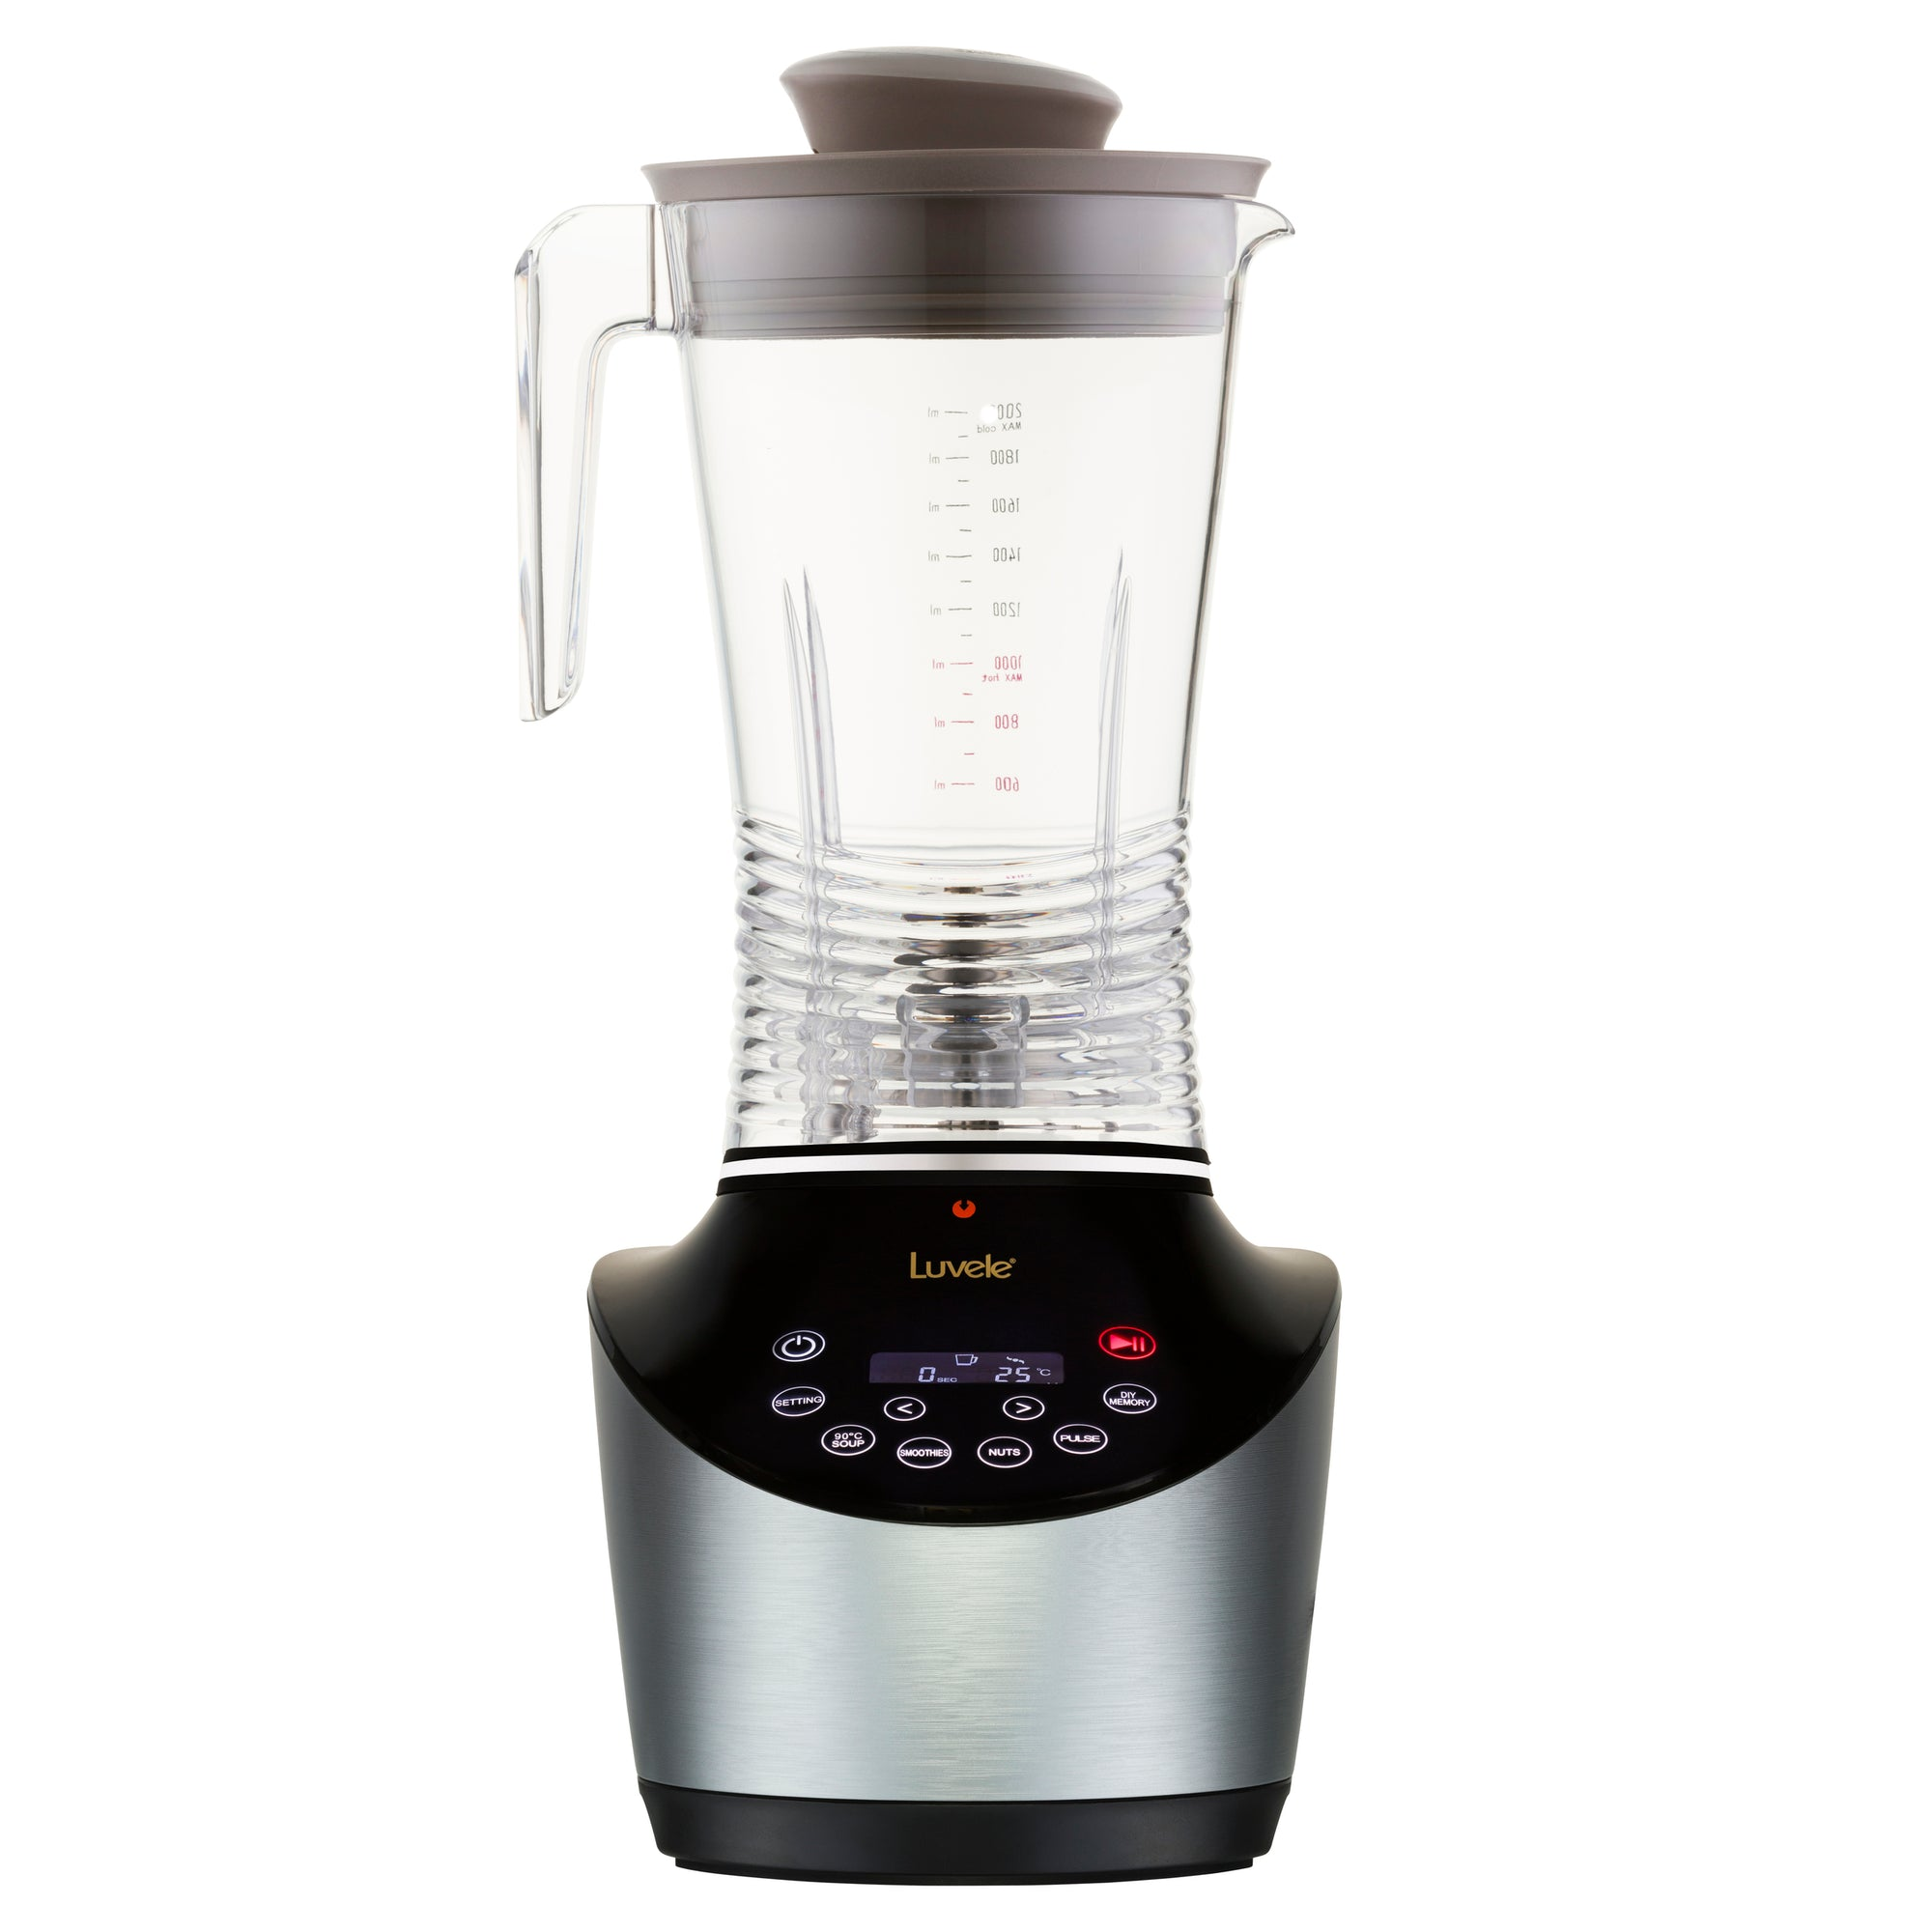 Luvele Vibe Blender System | High Speed Blender 2L BPA free PE plastic jug